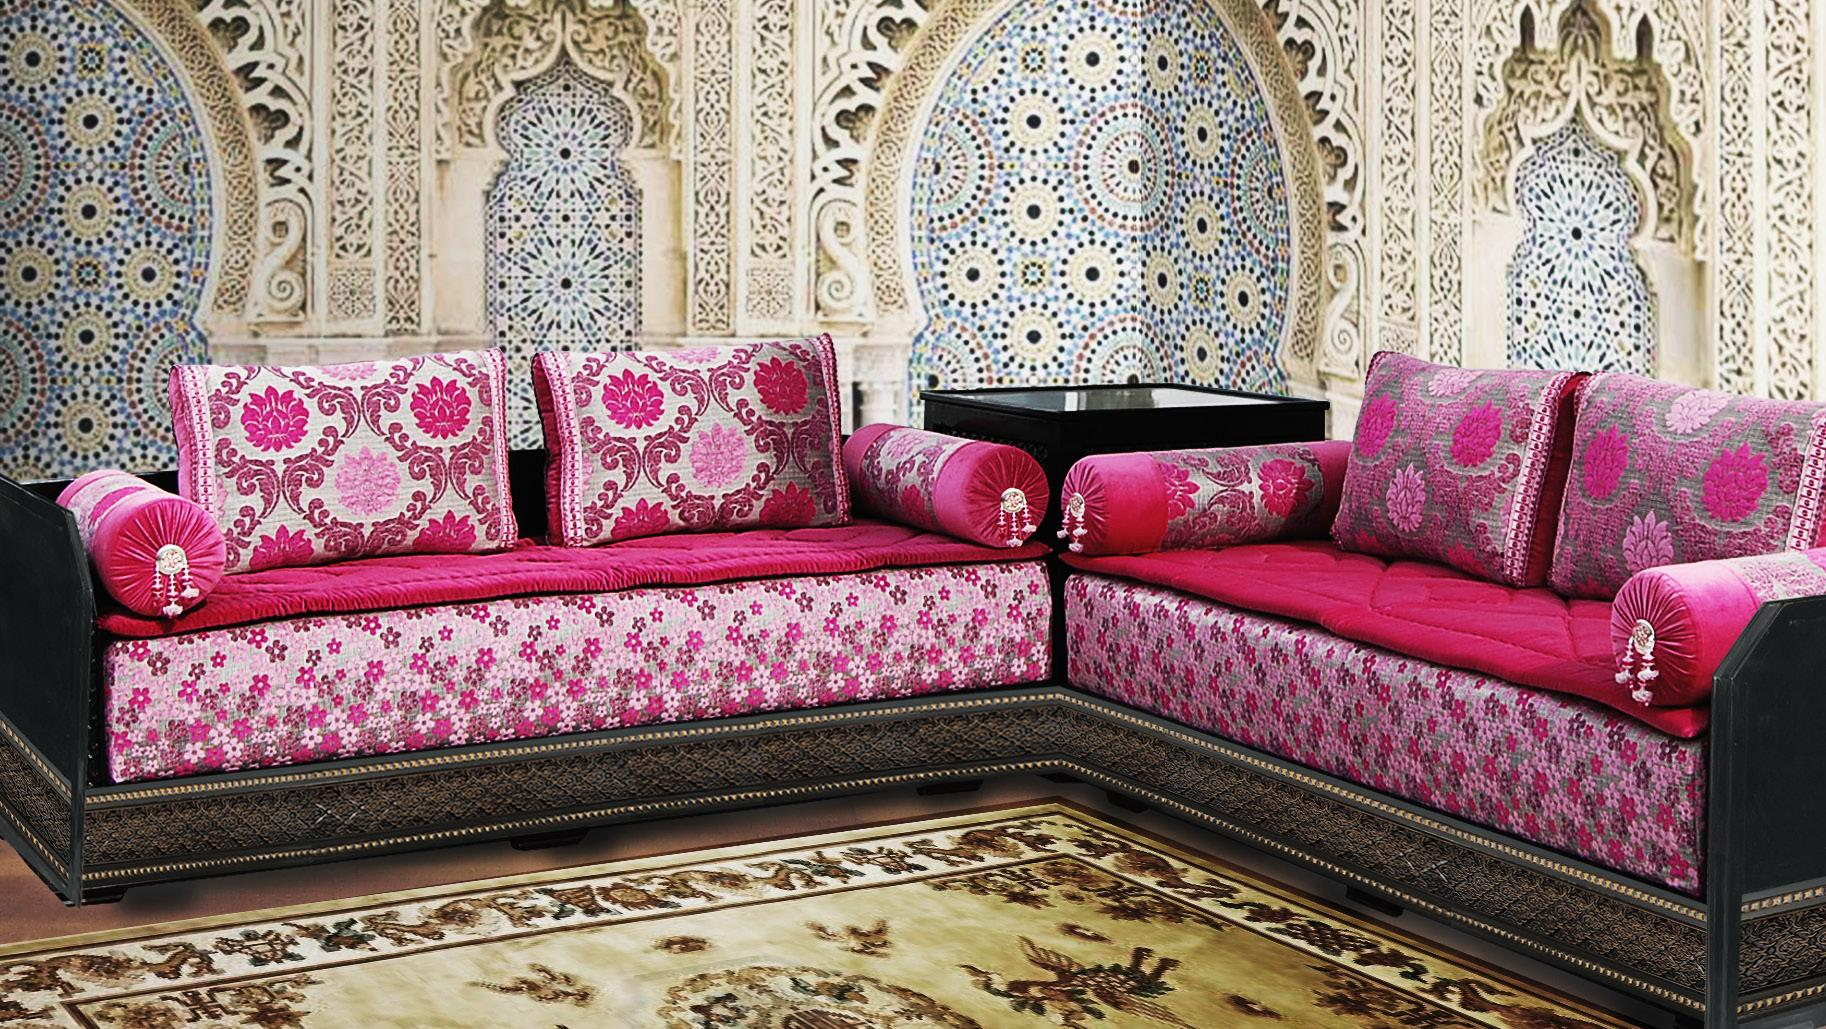 salon marocain traditionnel nouveau 2017 d cor salon marocain. Black Bedroom Furniture Sets. Home Design Ideas